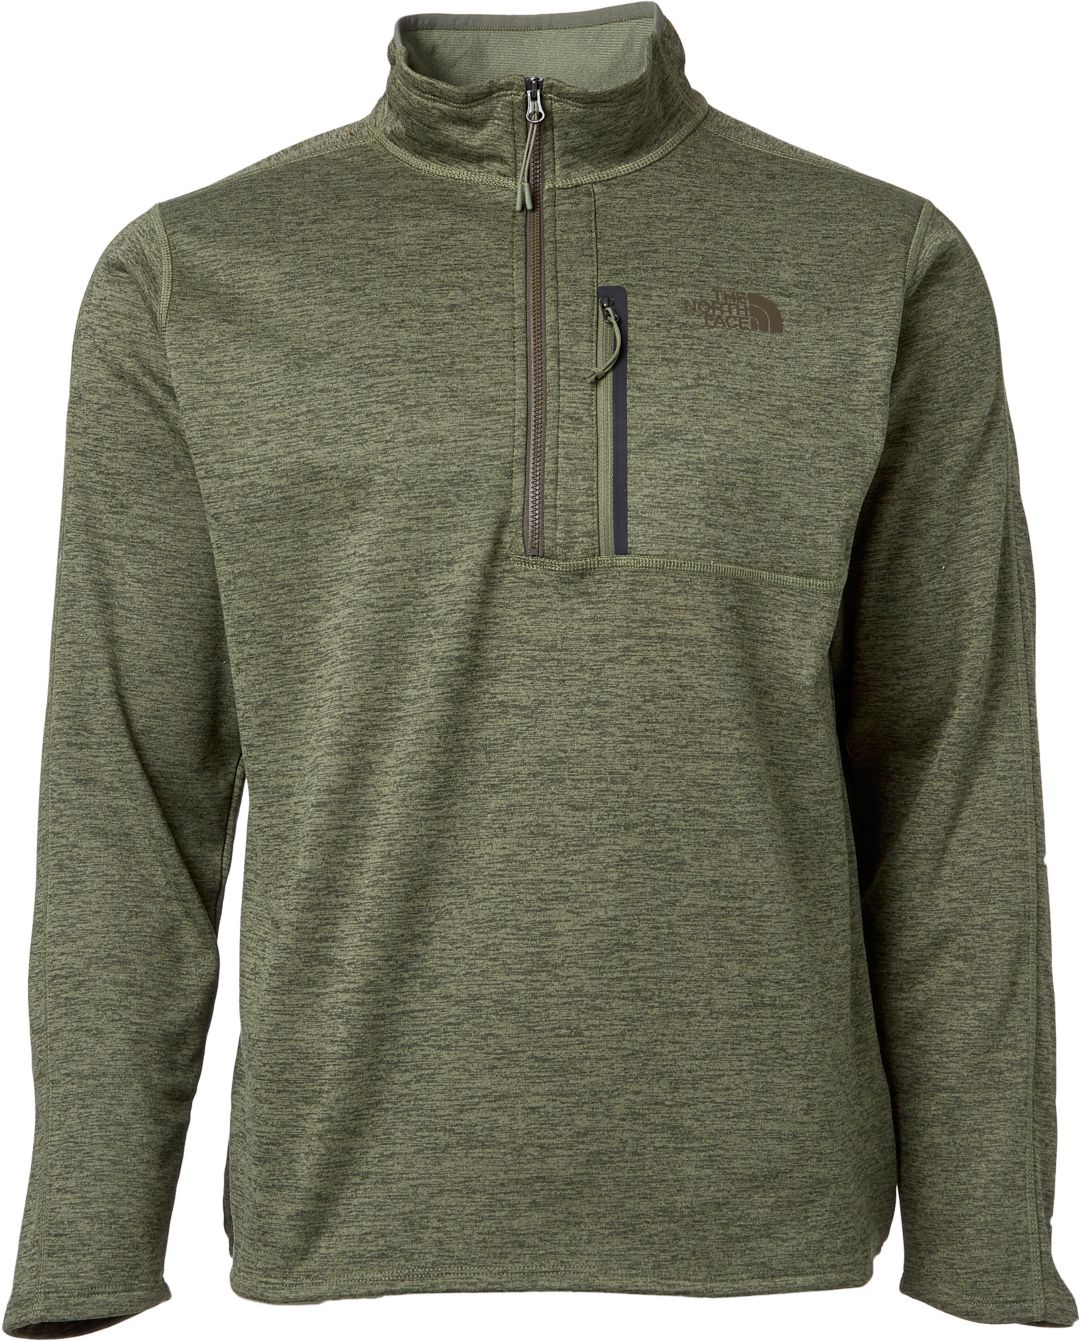 fcabb9f52 The North Face Men's Canyonlands Half Zip Pullover